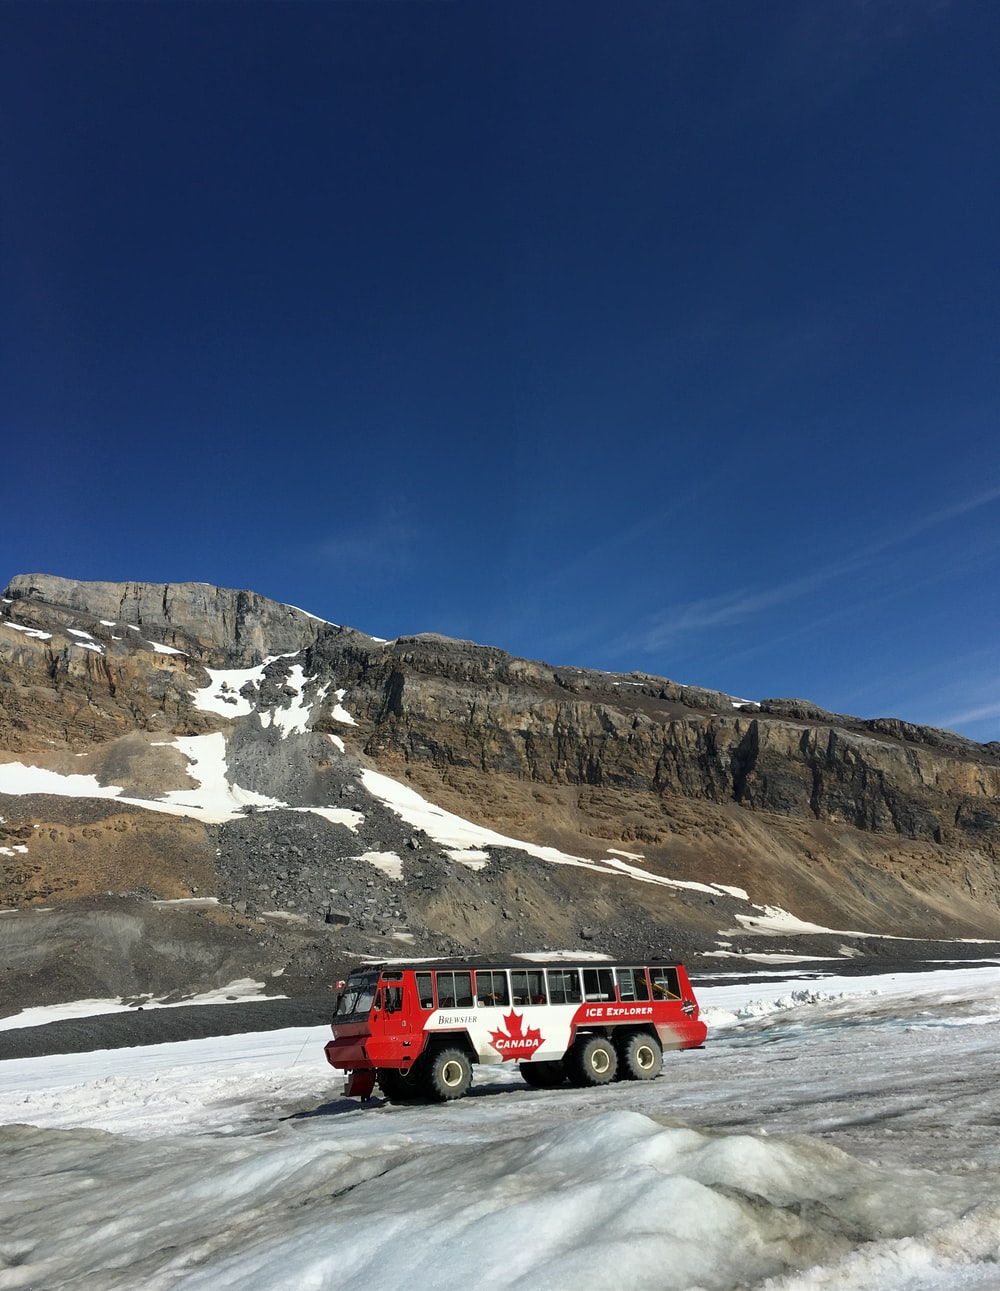 red and white car on snow covered road near rocky mountain during daytime